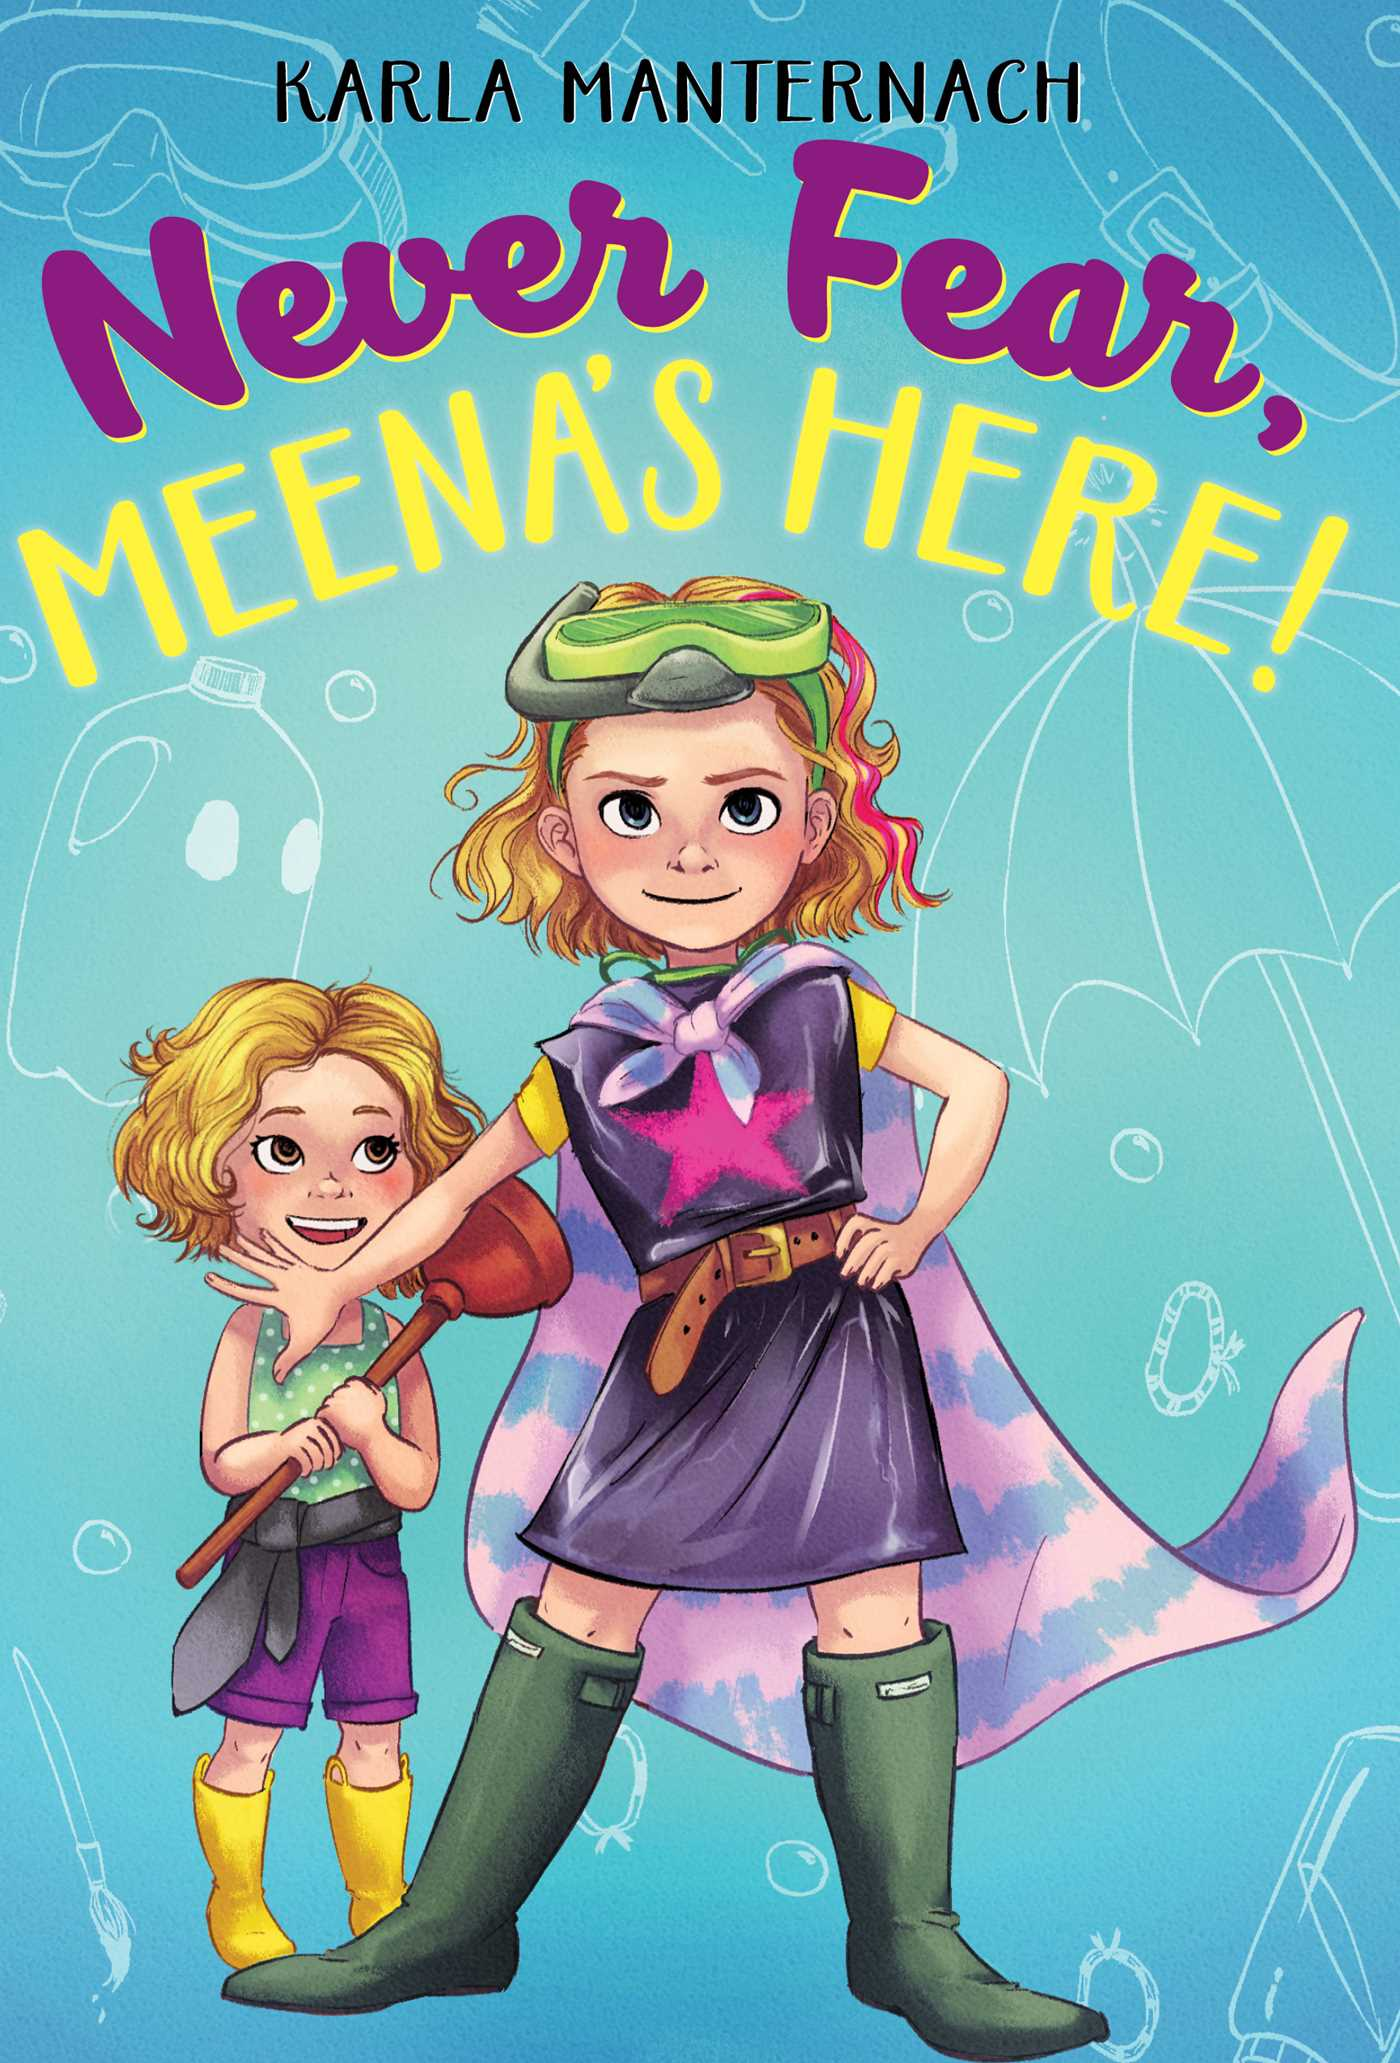 Never Fear Meena S Here Book By Karla Manternach Mina Price Official Publisher Page Simon Schuster